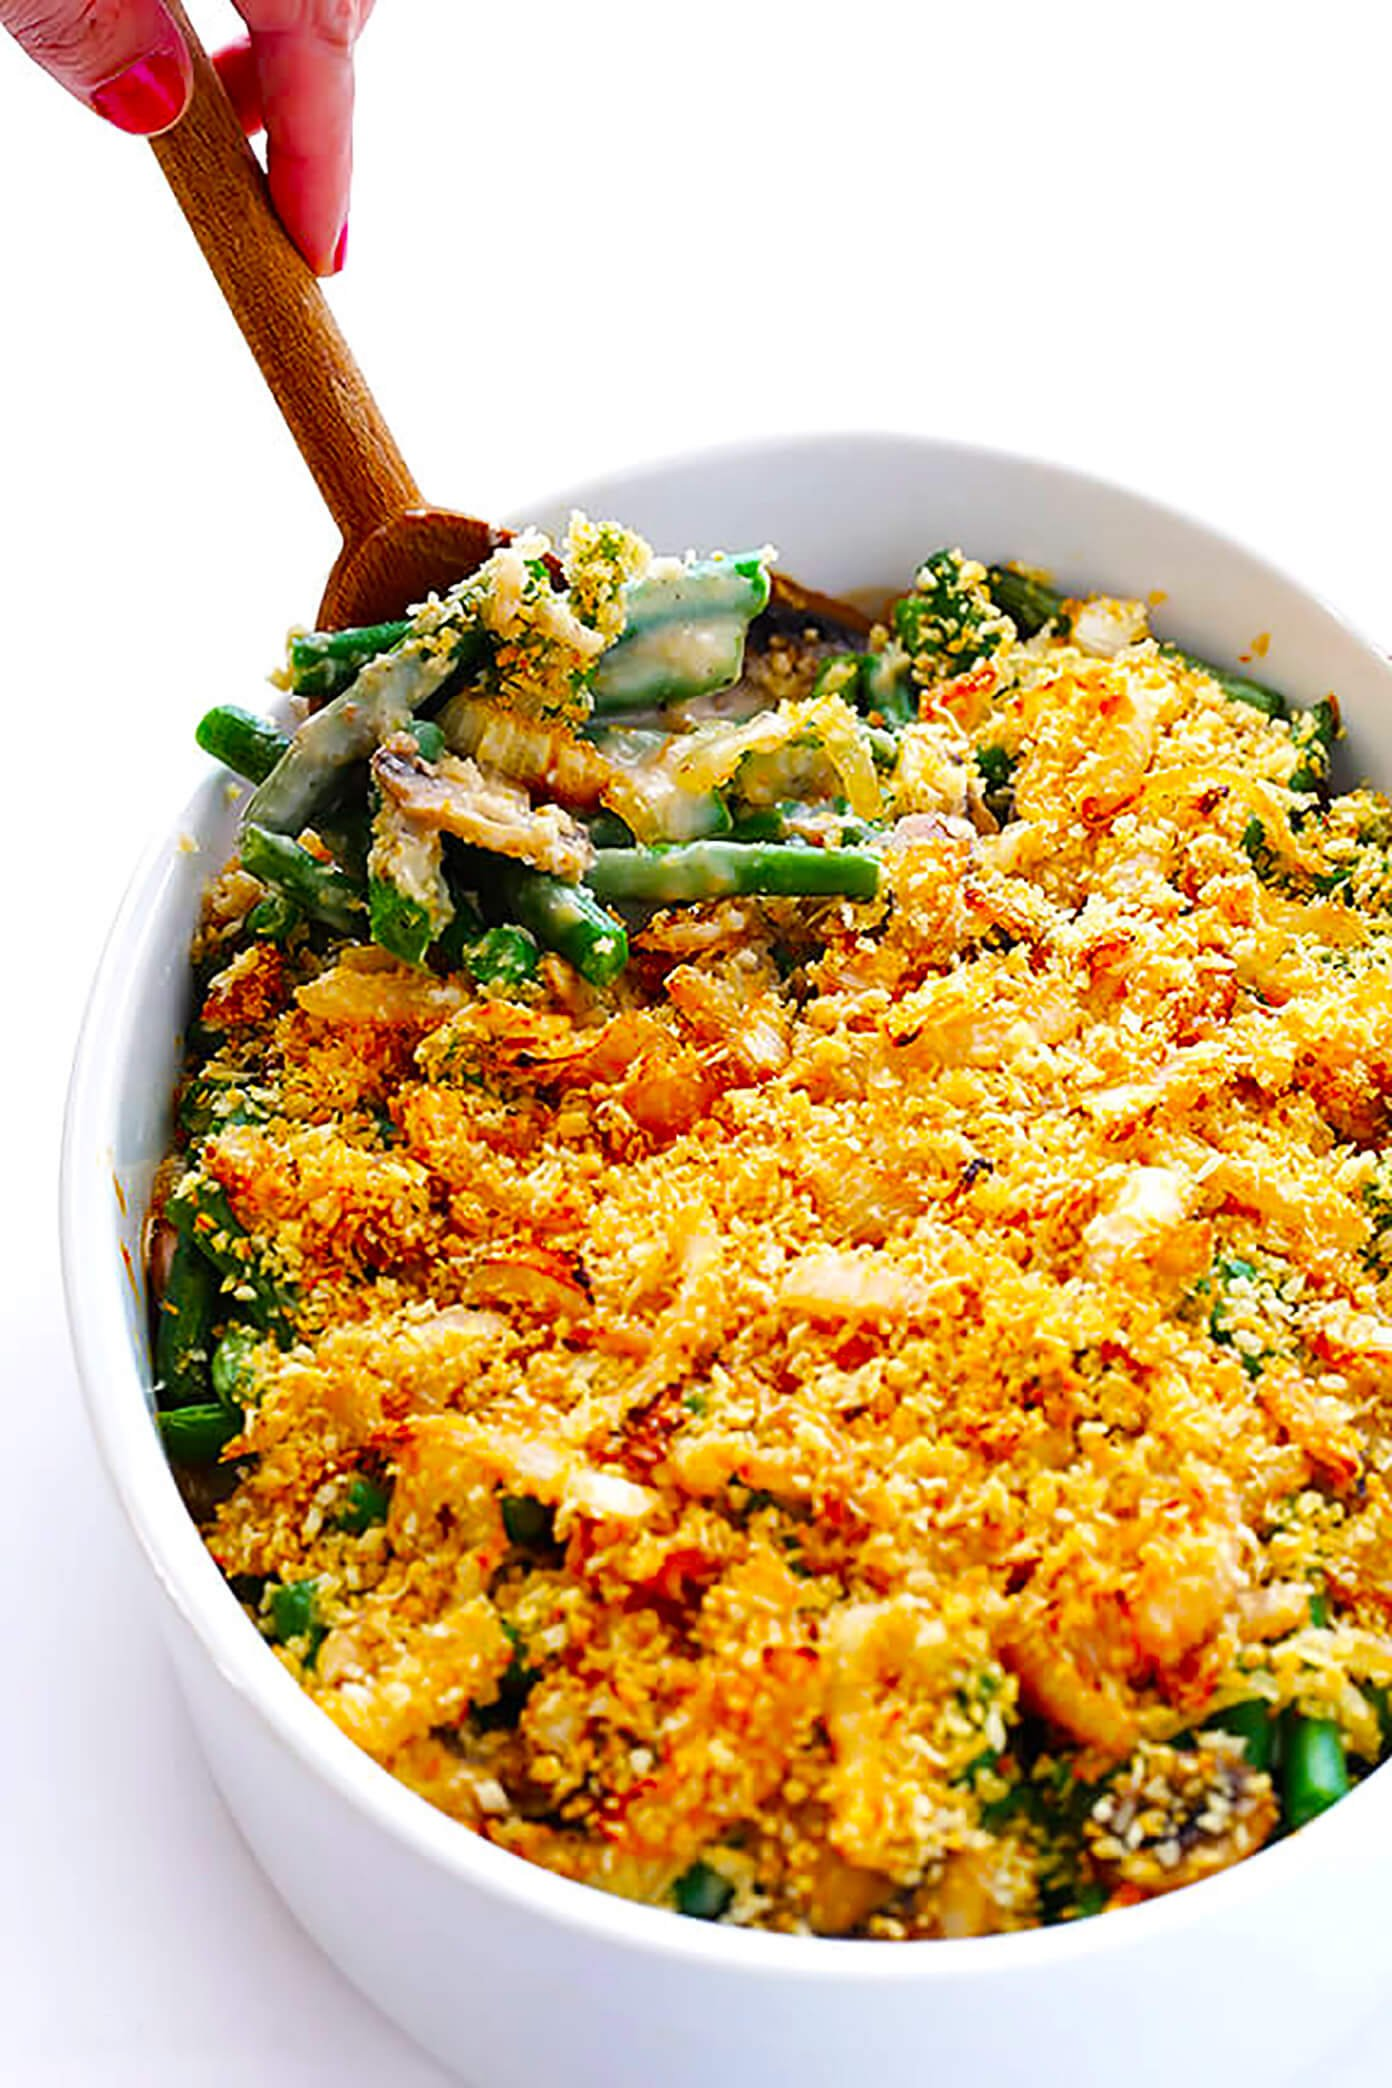 This Healthier Green Bean Casserole recipe is made with creamy fresh green beans, and topped with a crunchy panko topping. So delicious, and perfect for Thanksgiving!